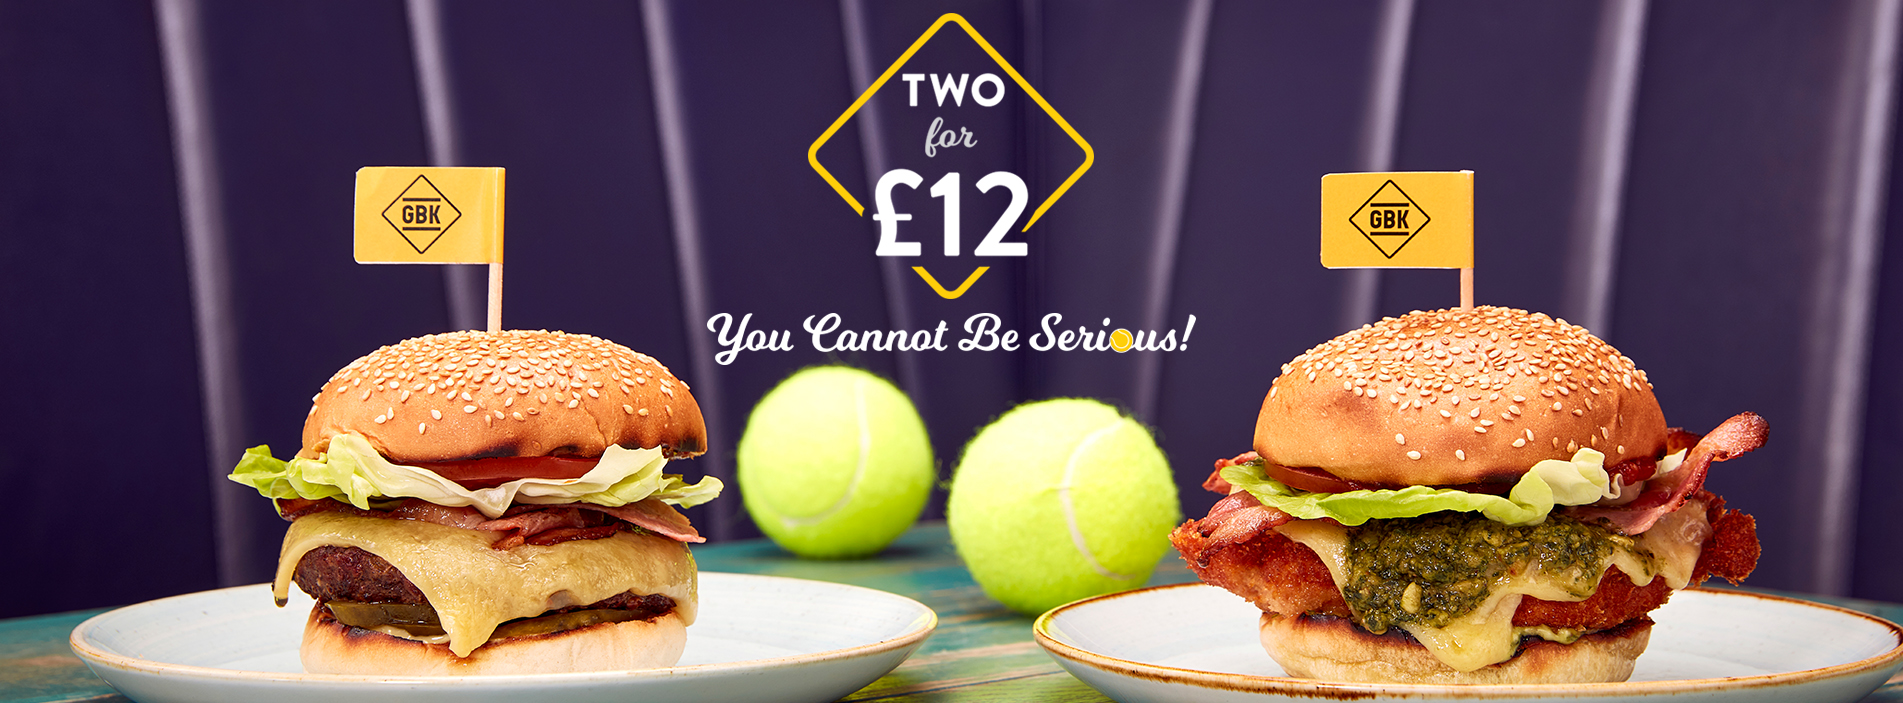 two for one gbk promotion